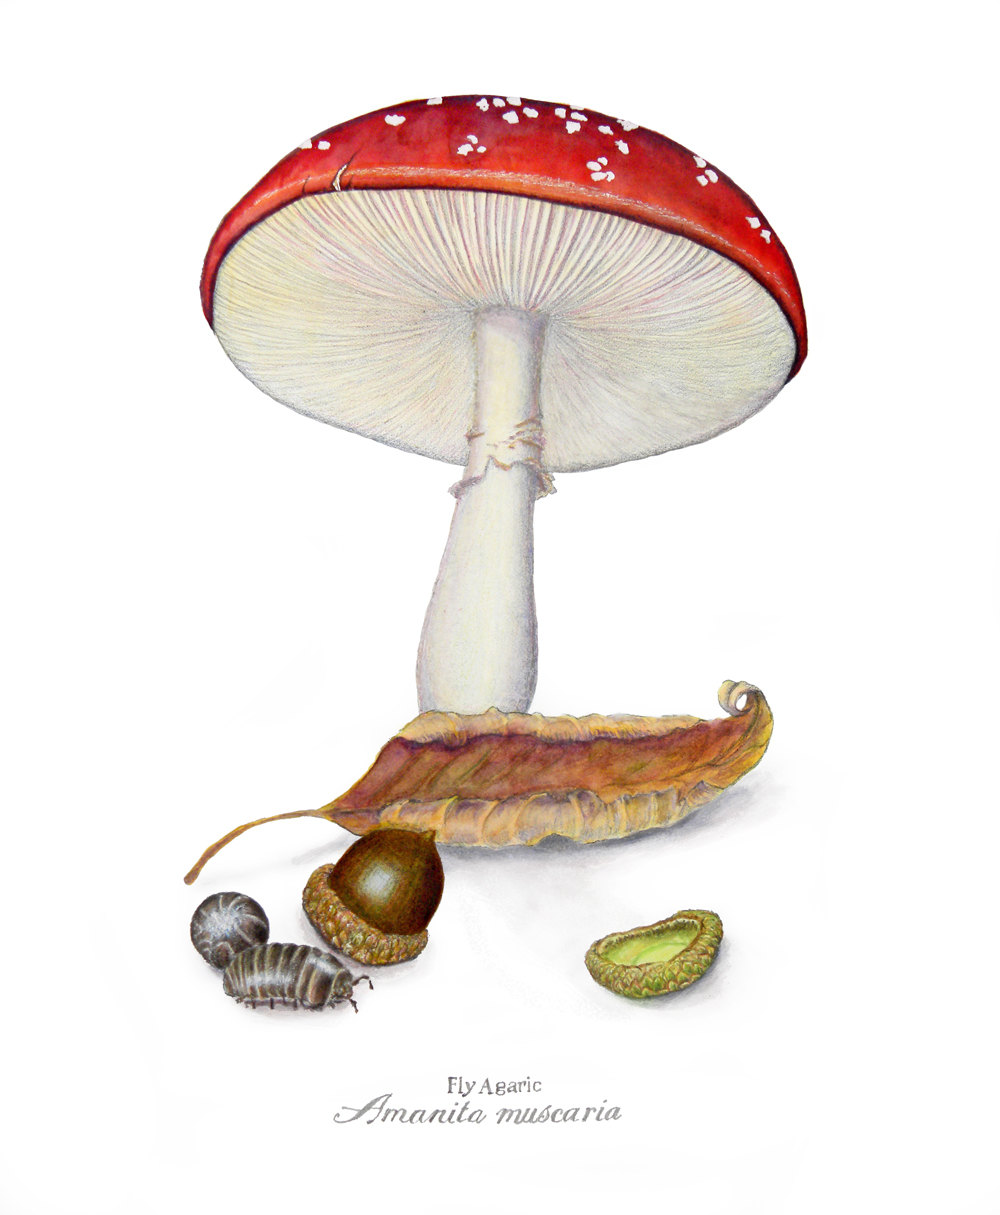 Drawn mushroom botanical $40 Muscaria Etsy from via